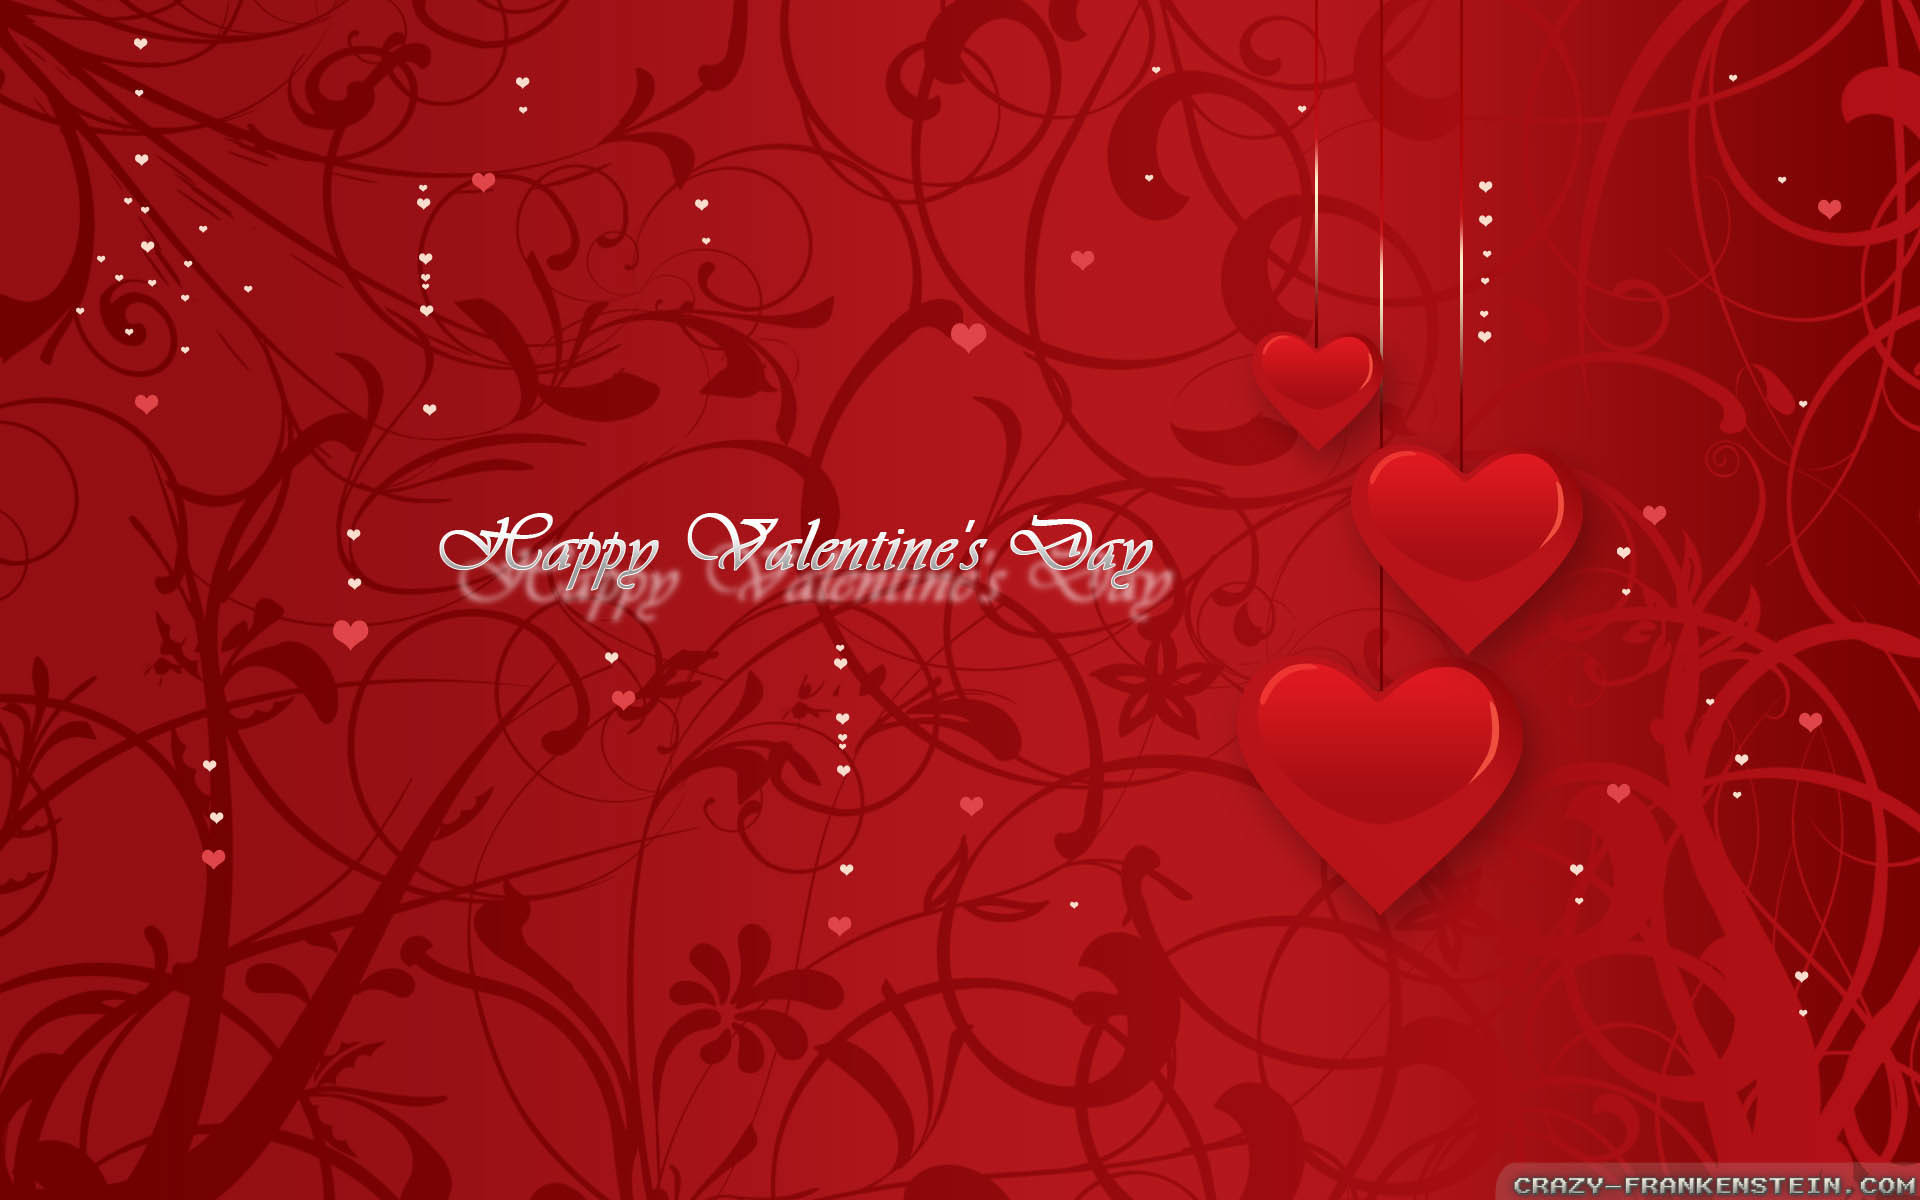 1920x1200 Happy Valentines Day Desktop Wallpapers High Quality Is 4K Wallpaper